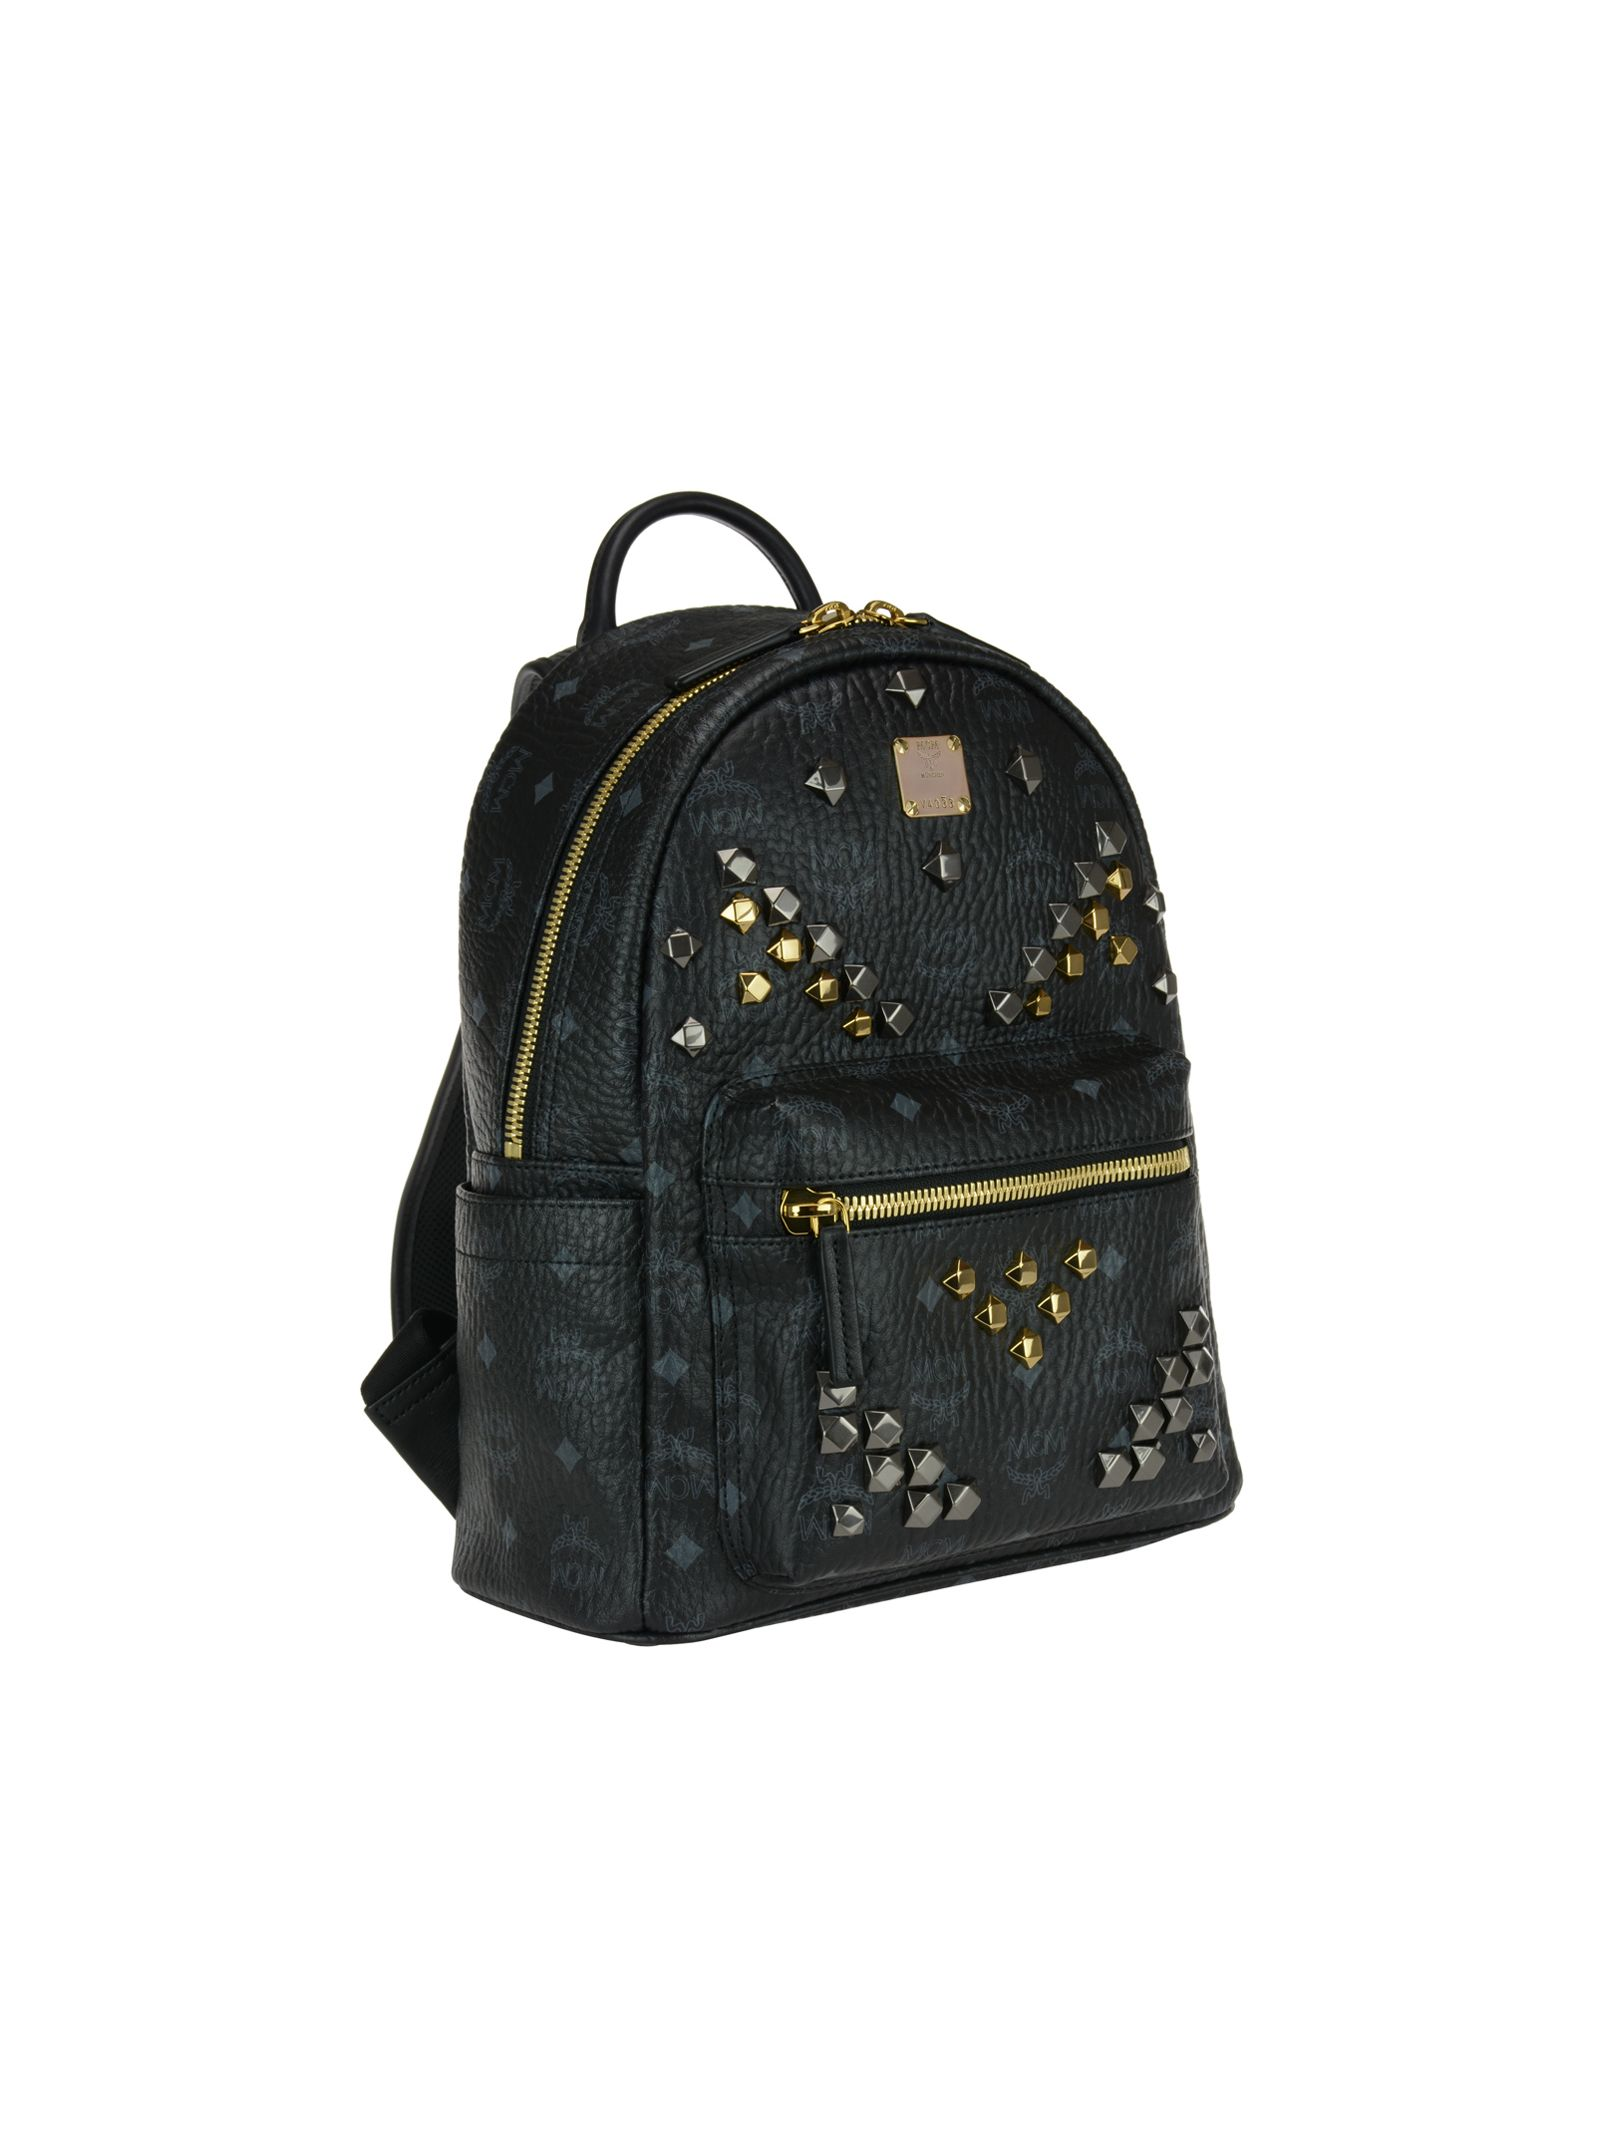 Mcm Stark Small Backpack - MCM - Andrea 2